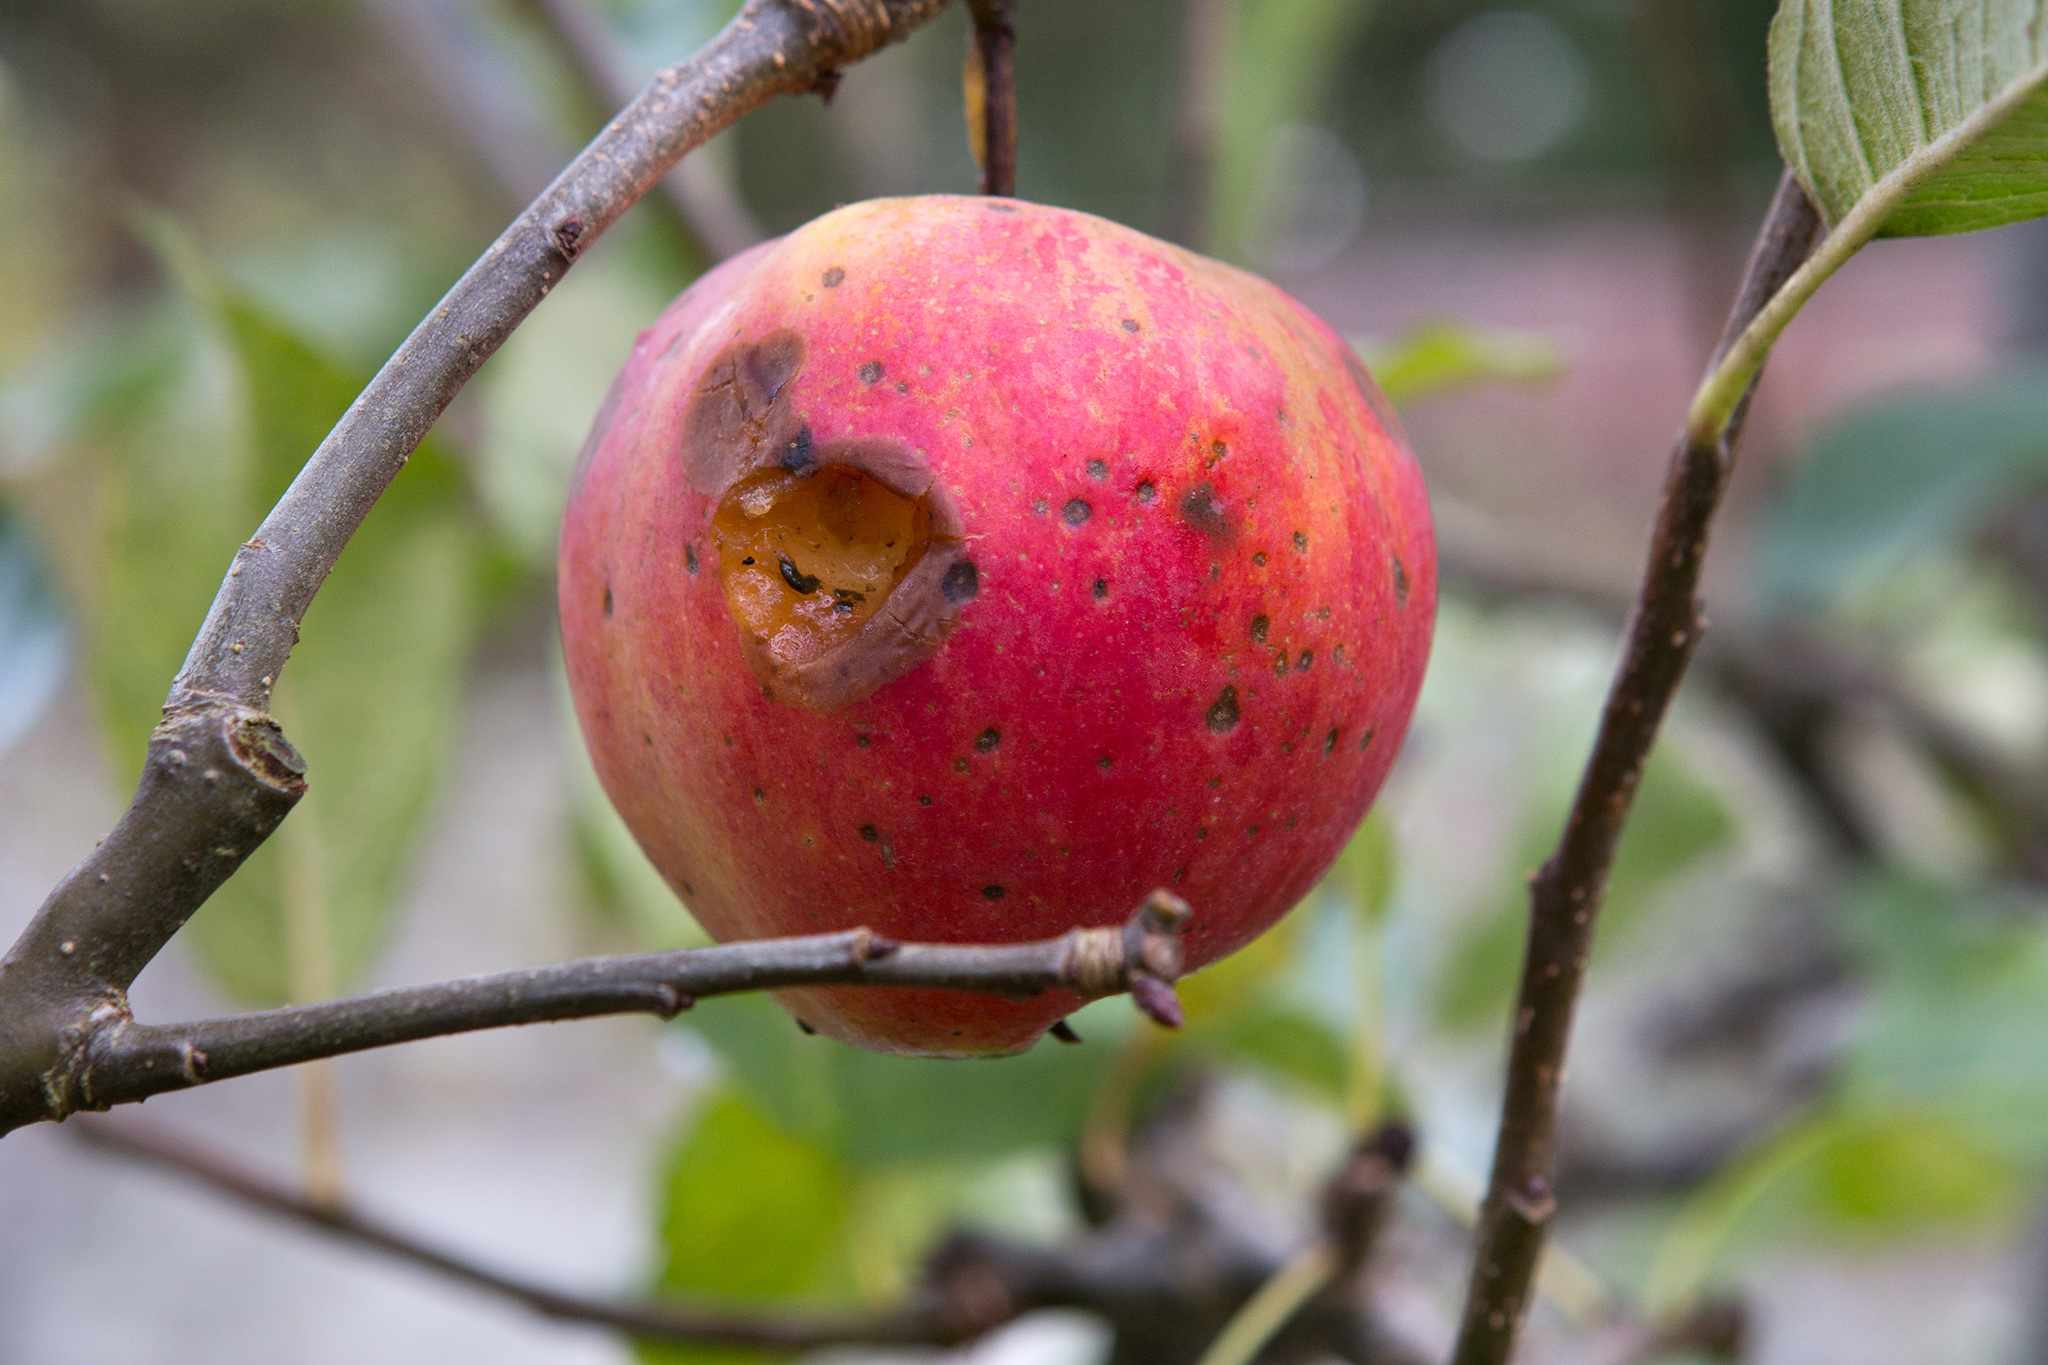 A ripe apple on the tree with a hole eaten by birds